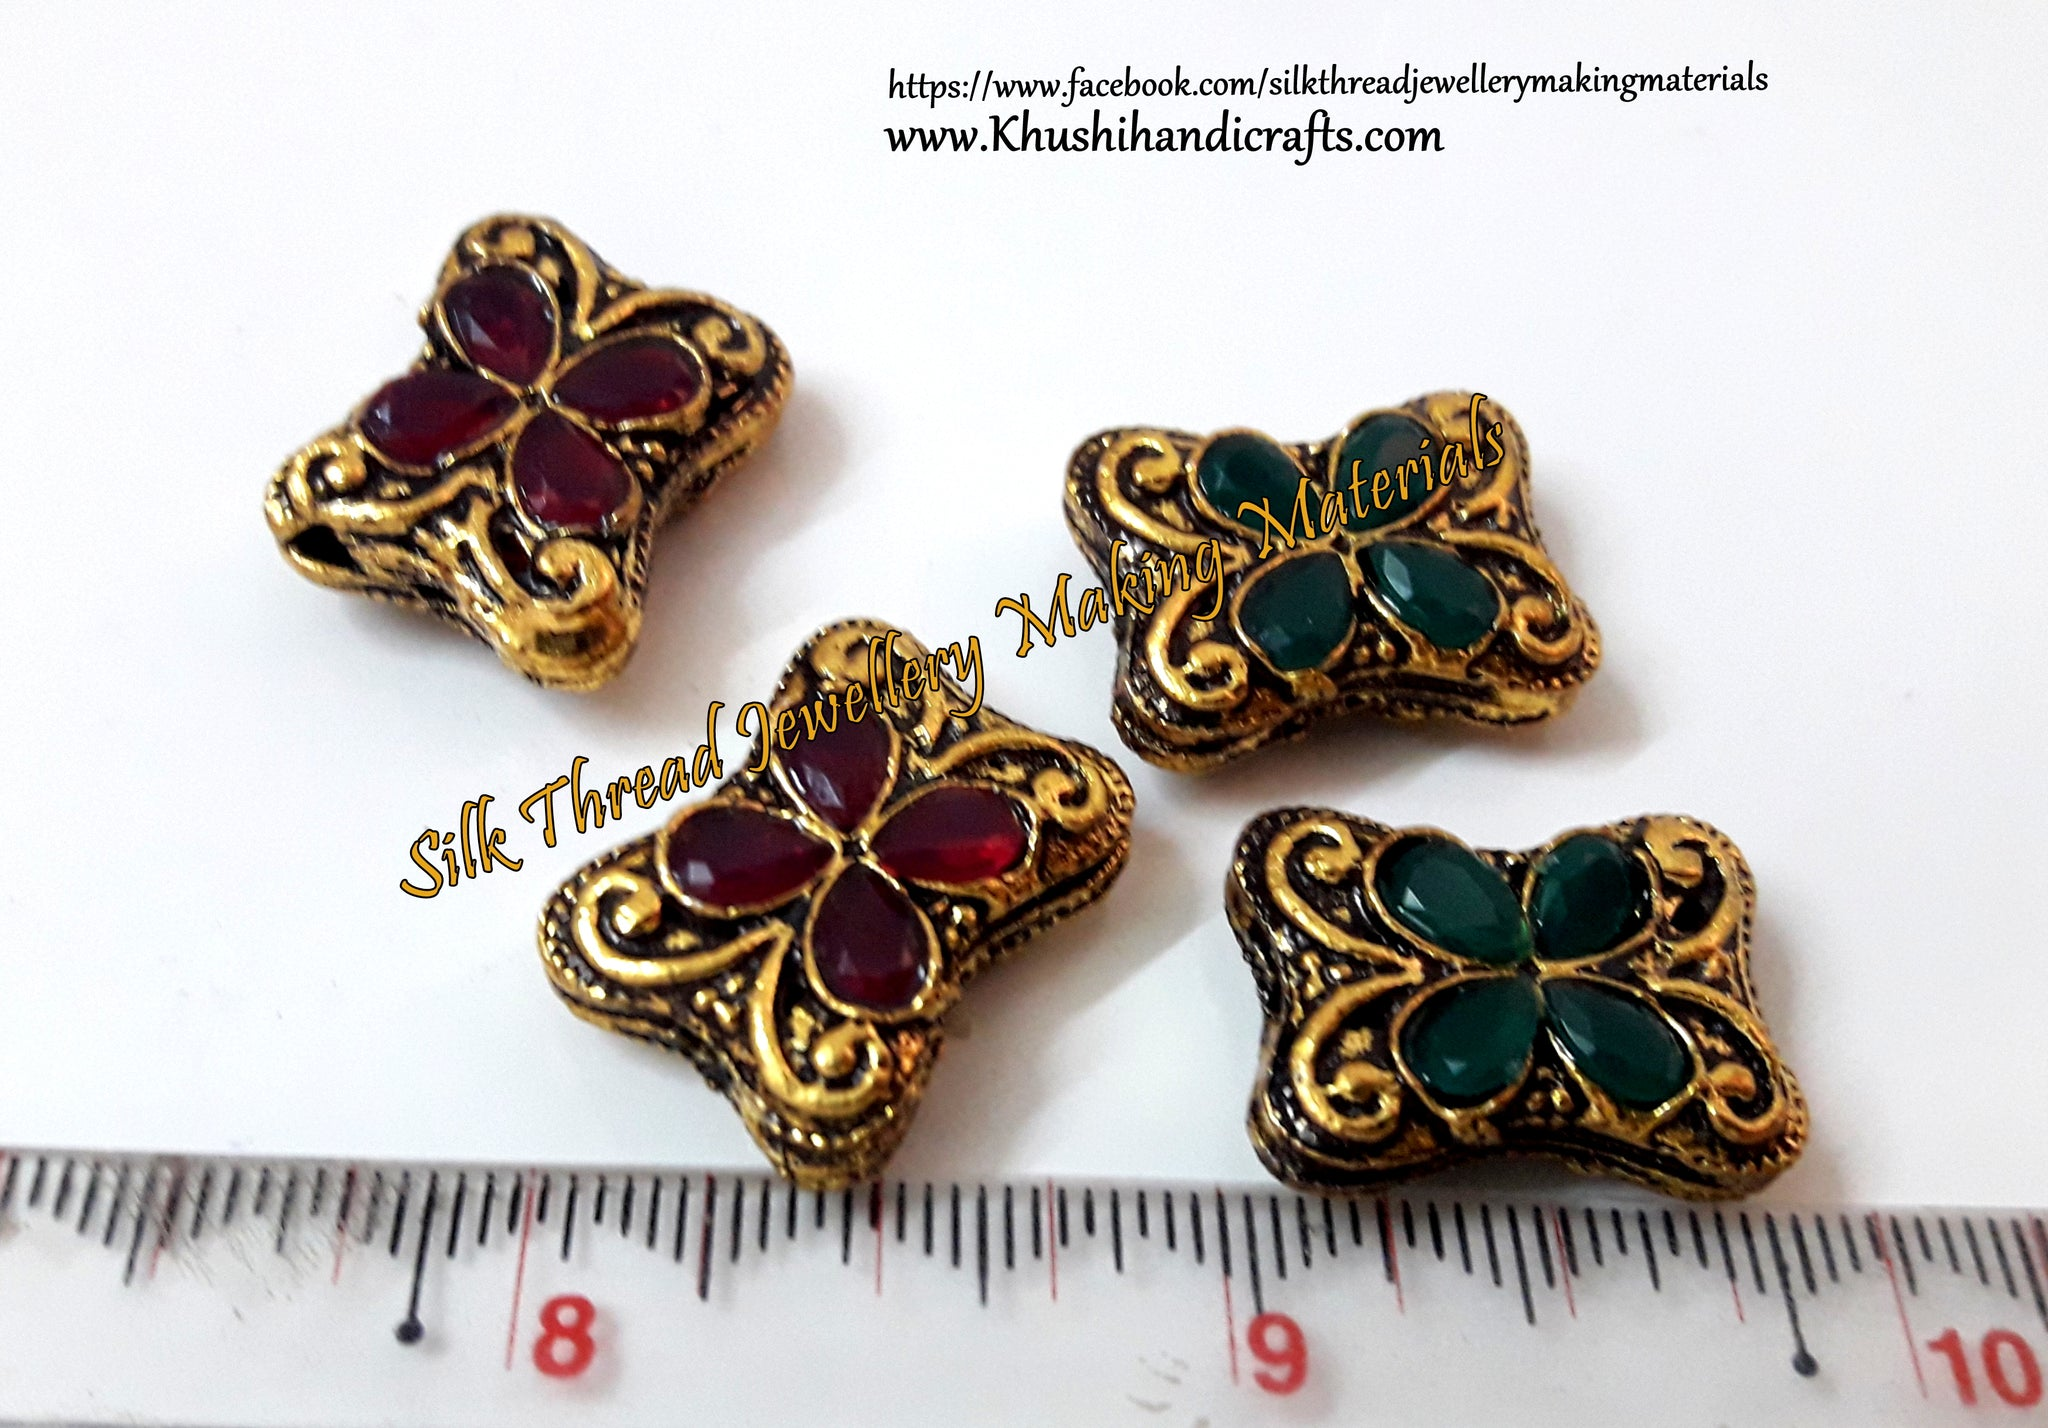 Victorian Beads